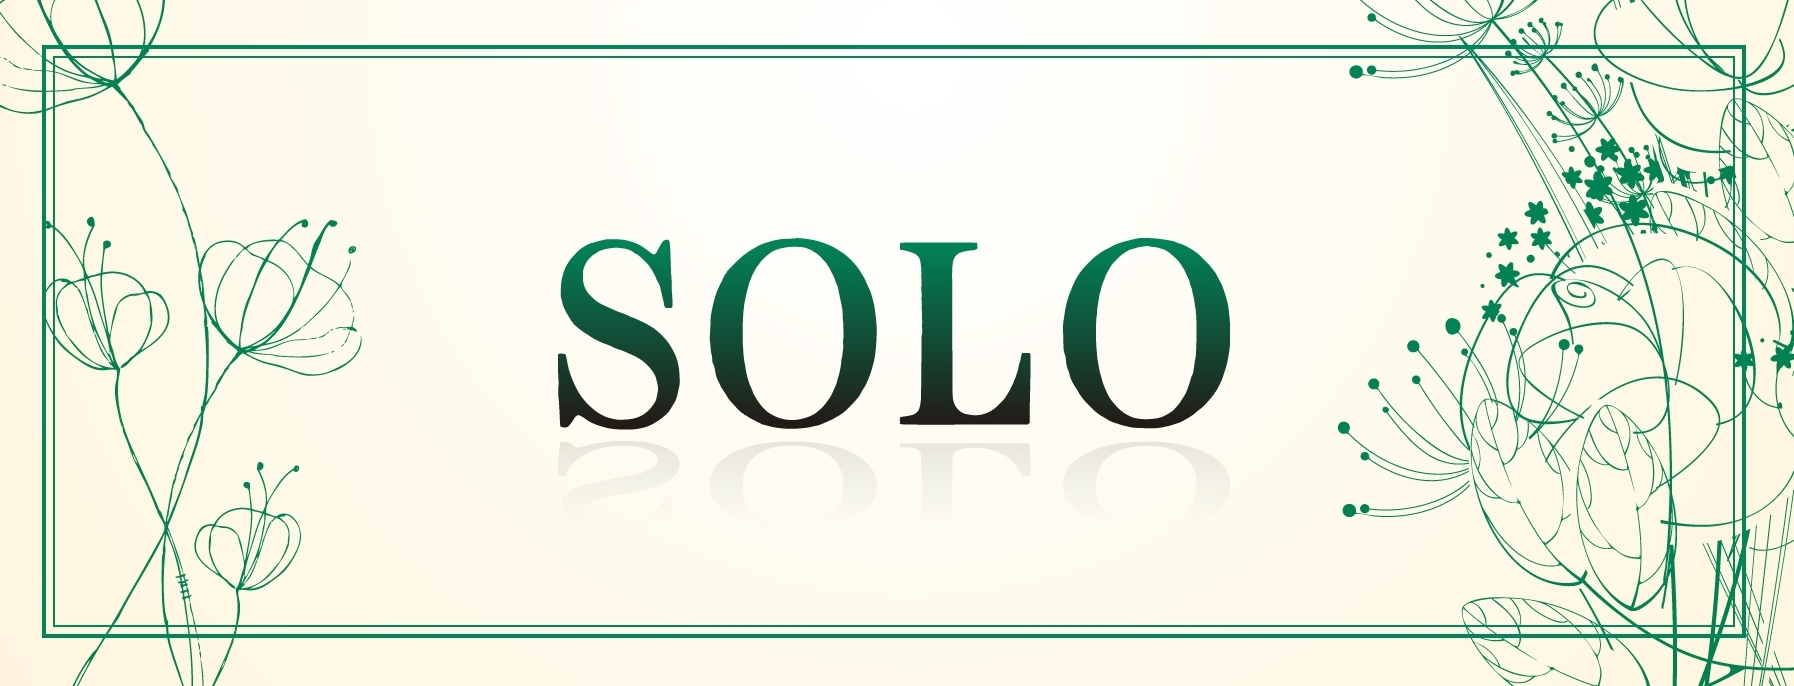 SOLO ~ソロ~